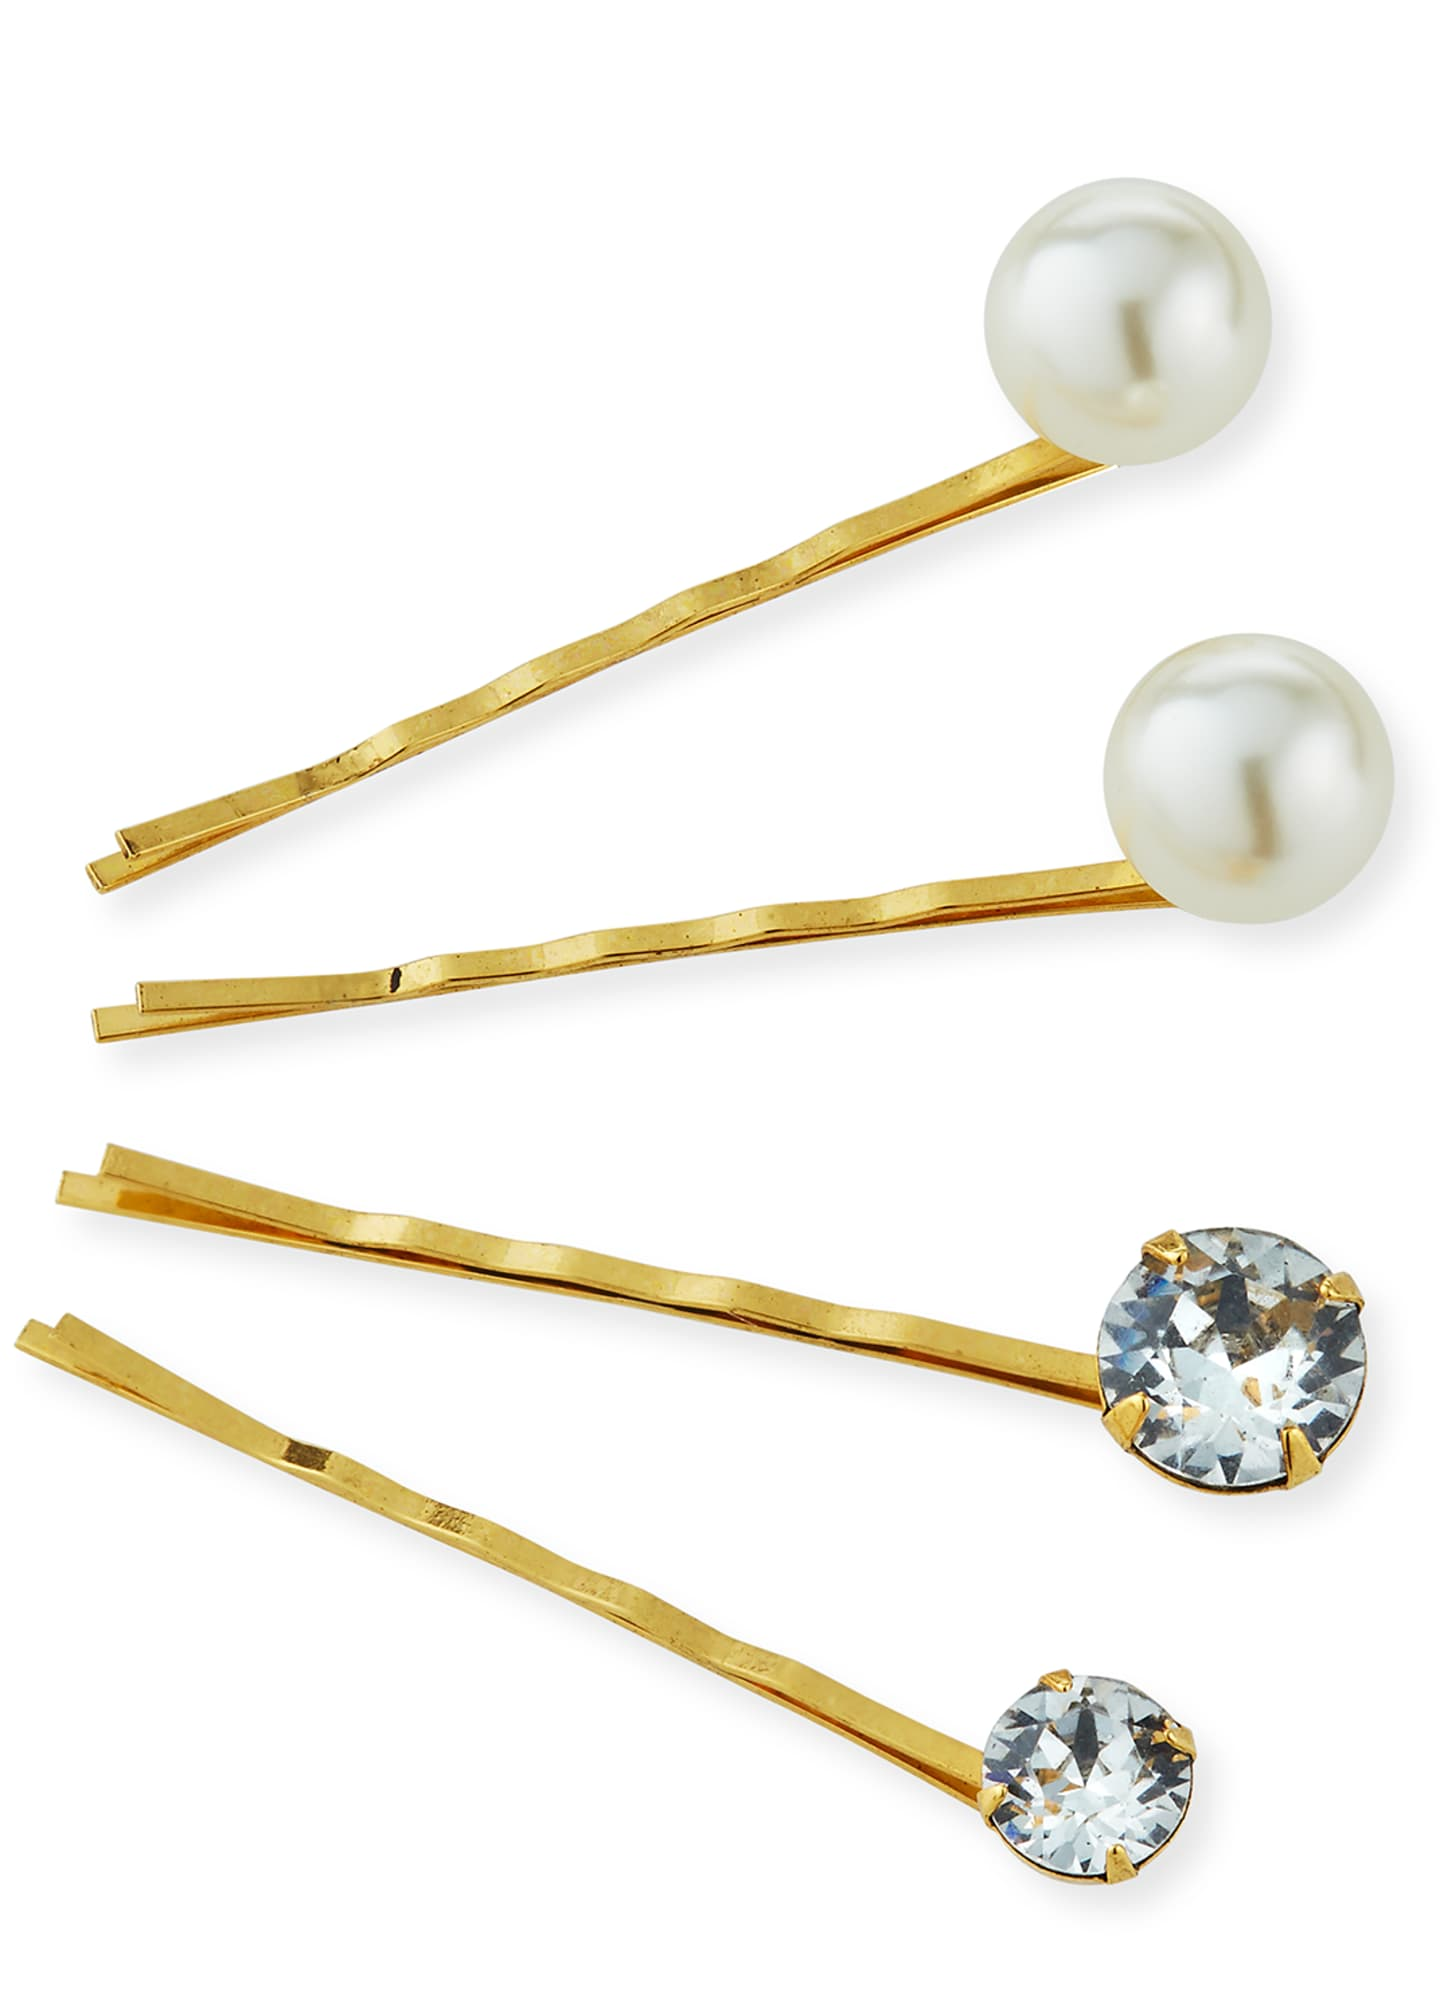 Image 3 of 3: Gigi Crystal & Pearl Bobby Pins, Set of 4